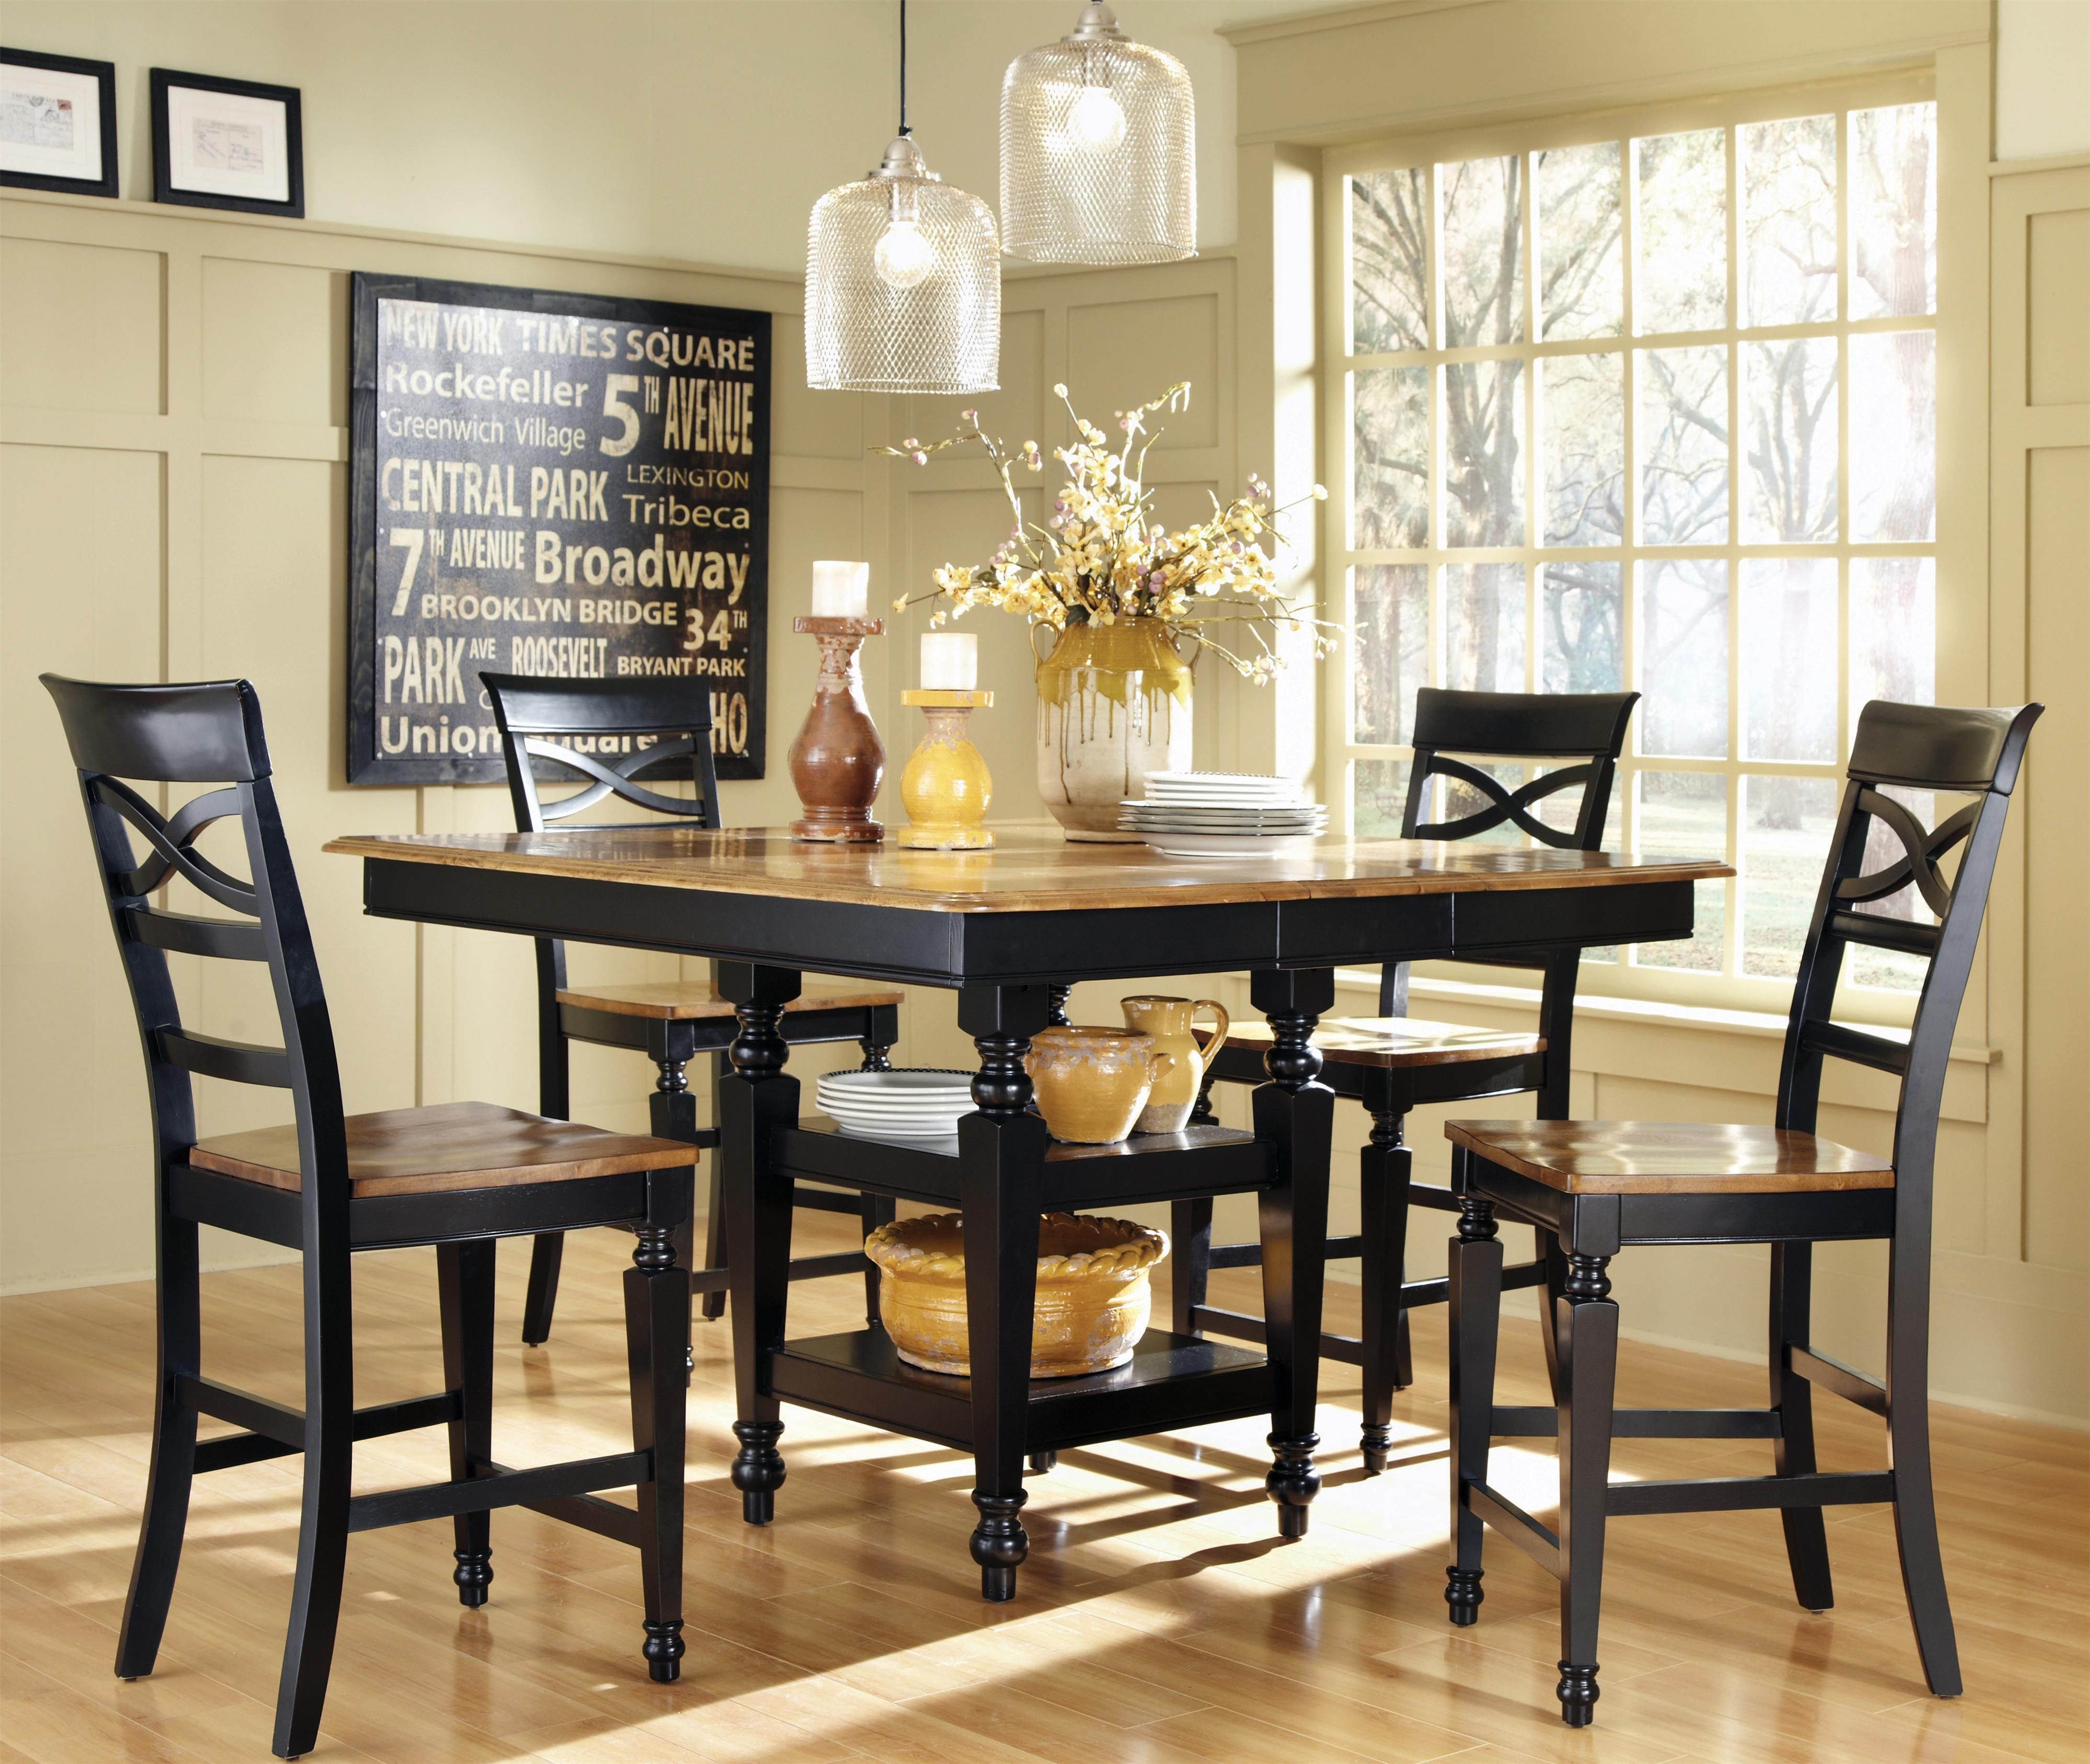 We are IN LOVE with this table set With its black and oak